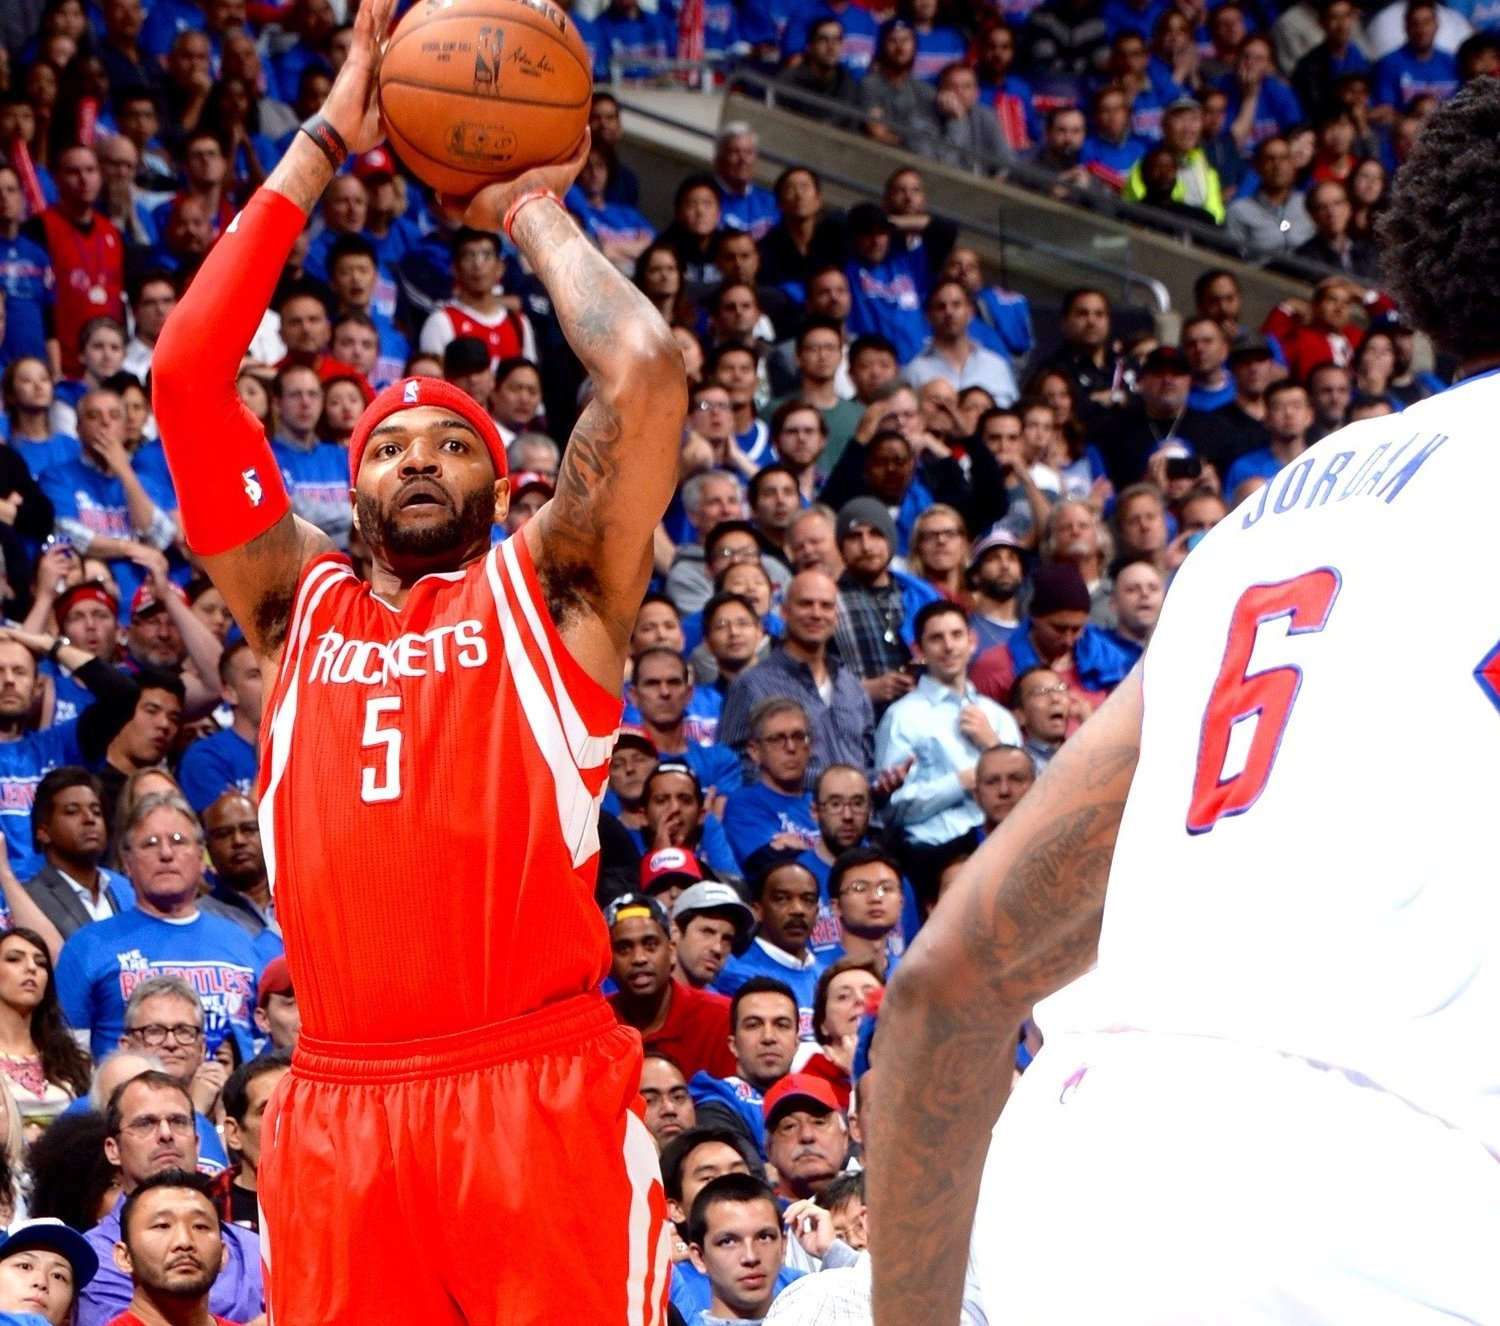 Warriors Vs Rockets Game 7 Live Stream For Free: Houston Rockets Vs. Los Angeles Clippers: Live Score